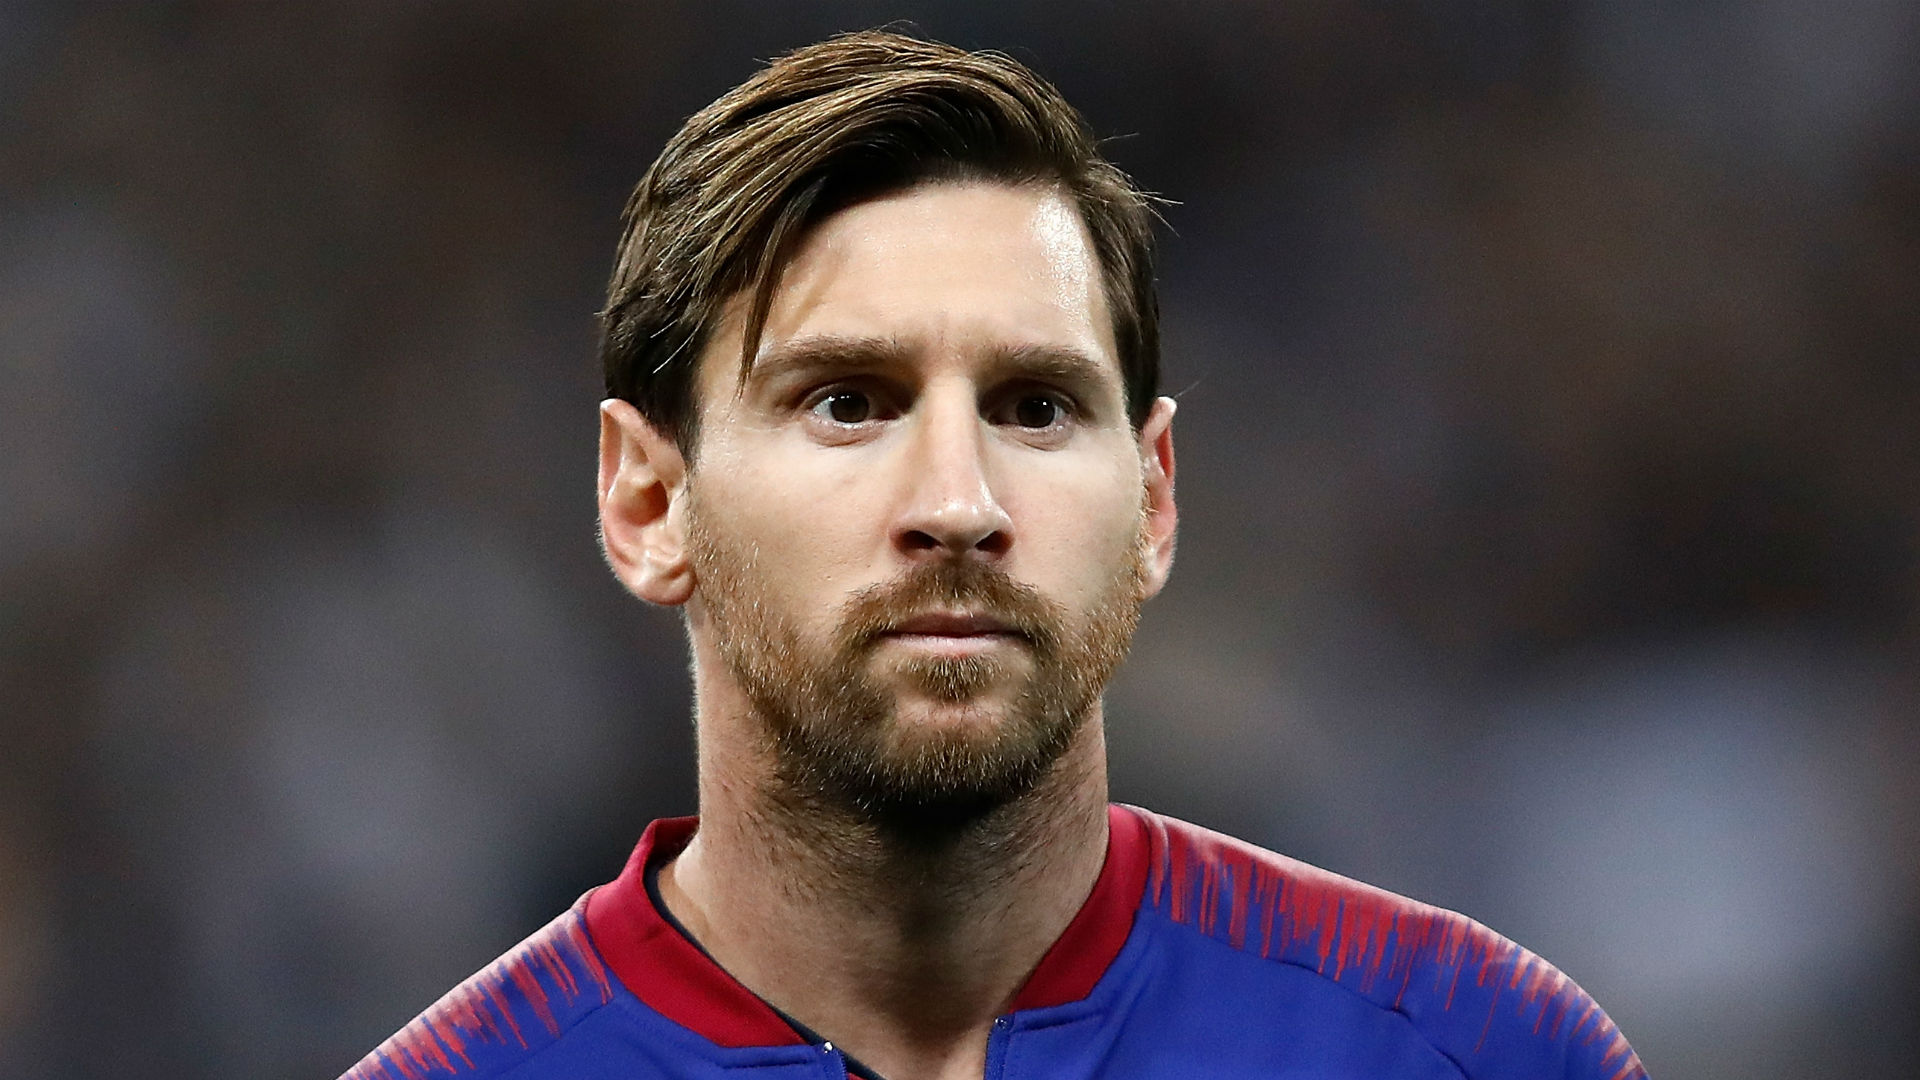 Messi to leave Barcelona on free transfer